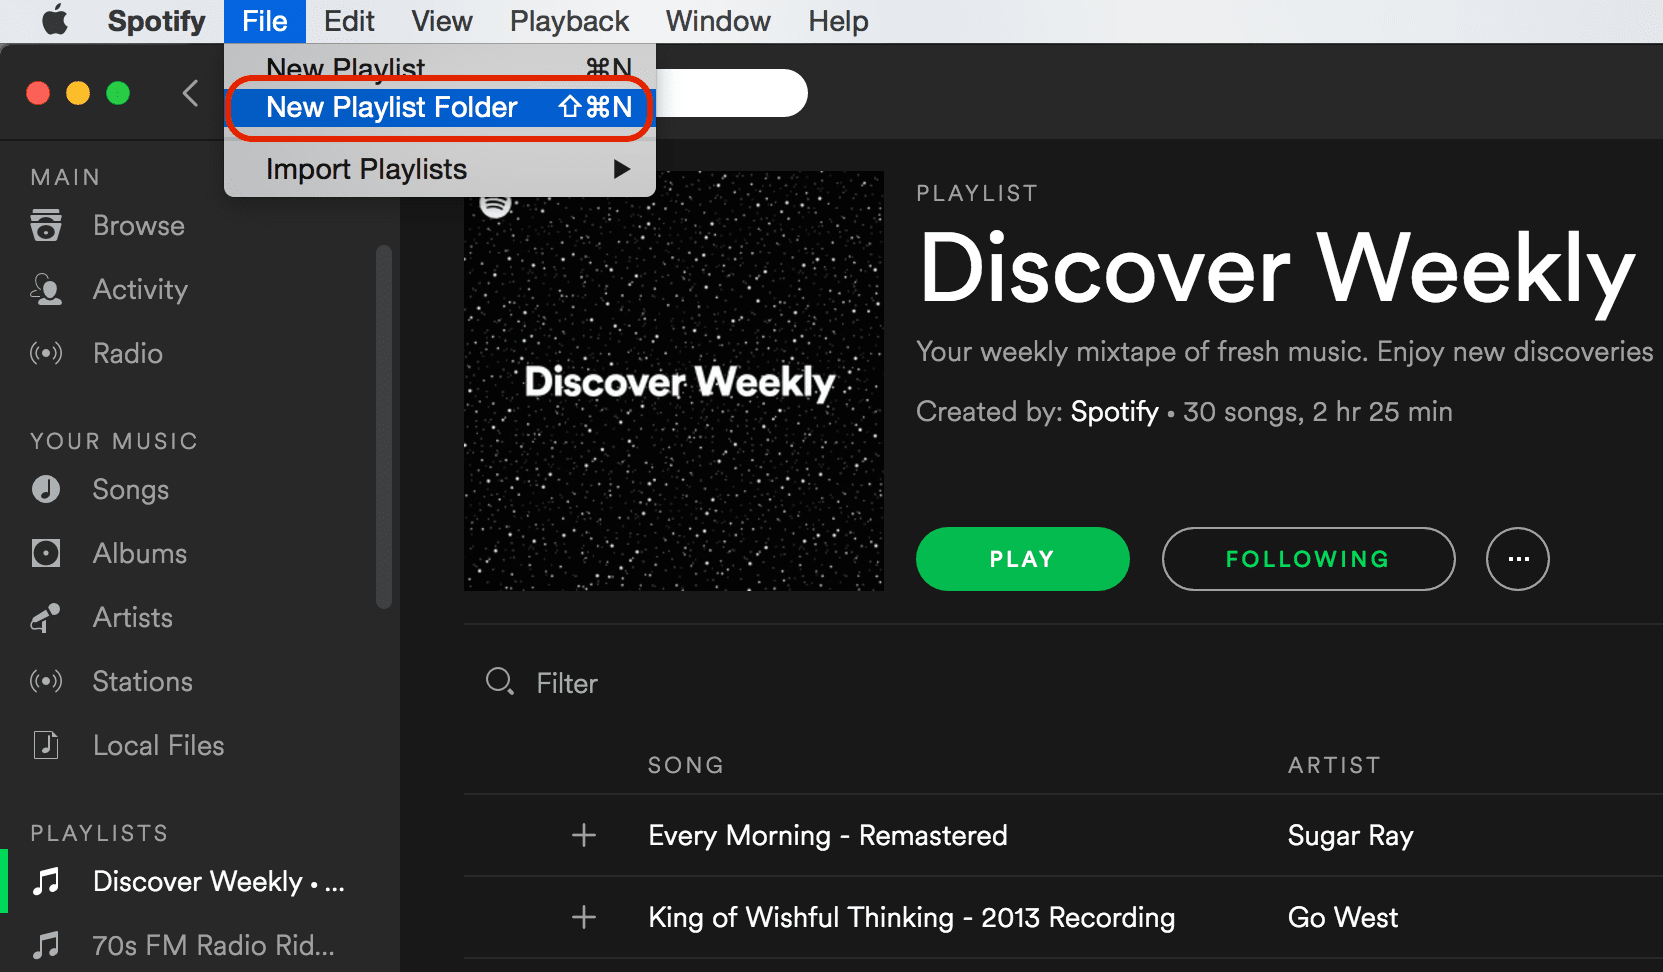 22 spotify tips and tricks to pump up your music streaming